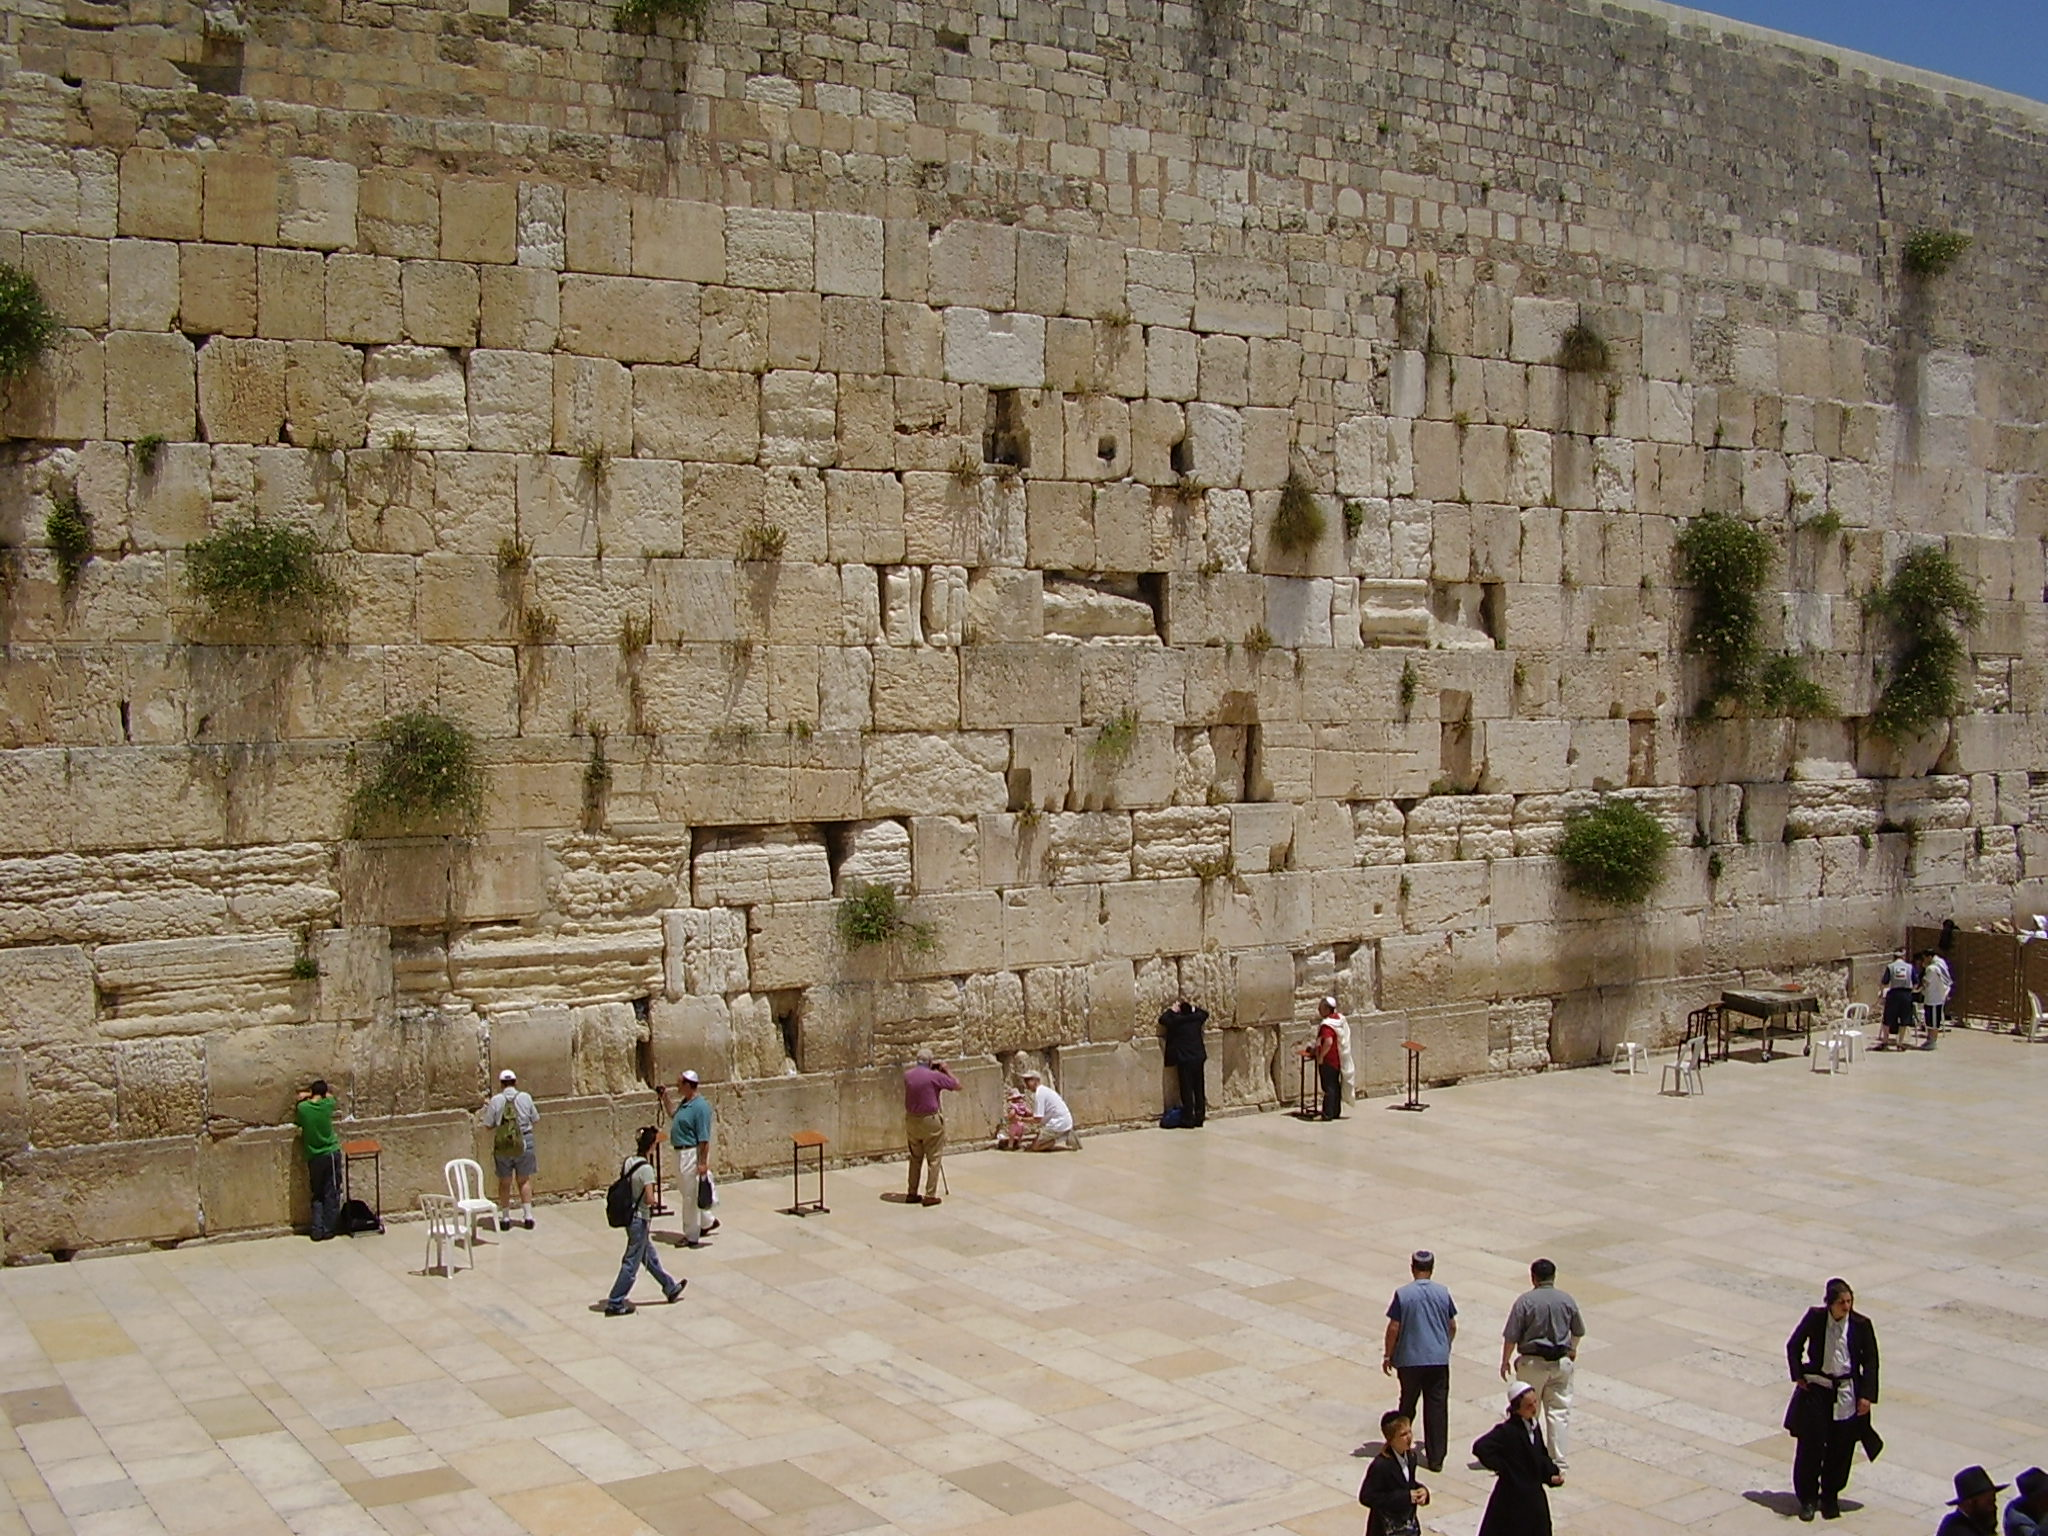 The Kotel Western Wall Tunnel Tour